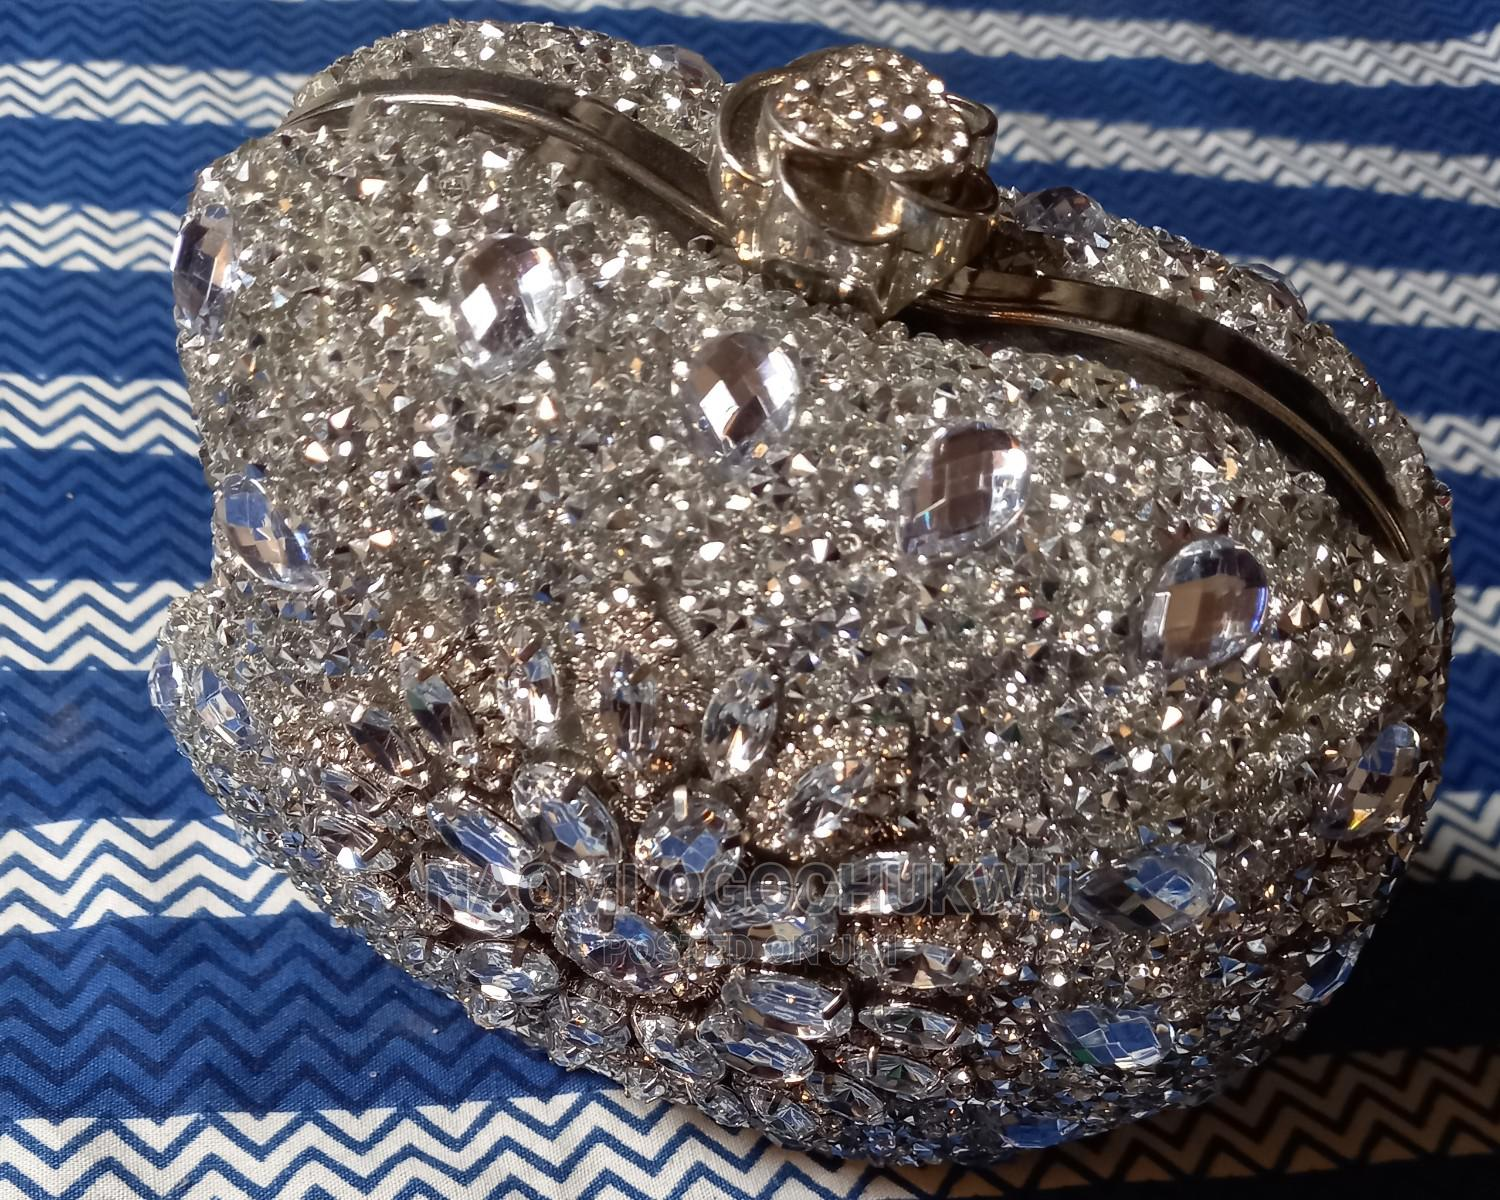 Silver Stoned Clutch Bag